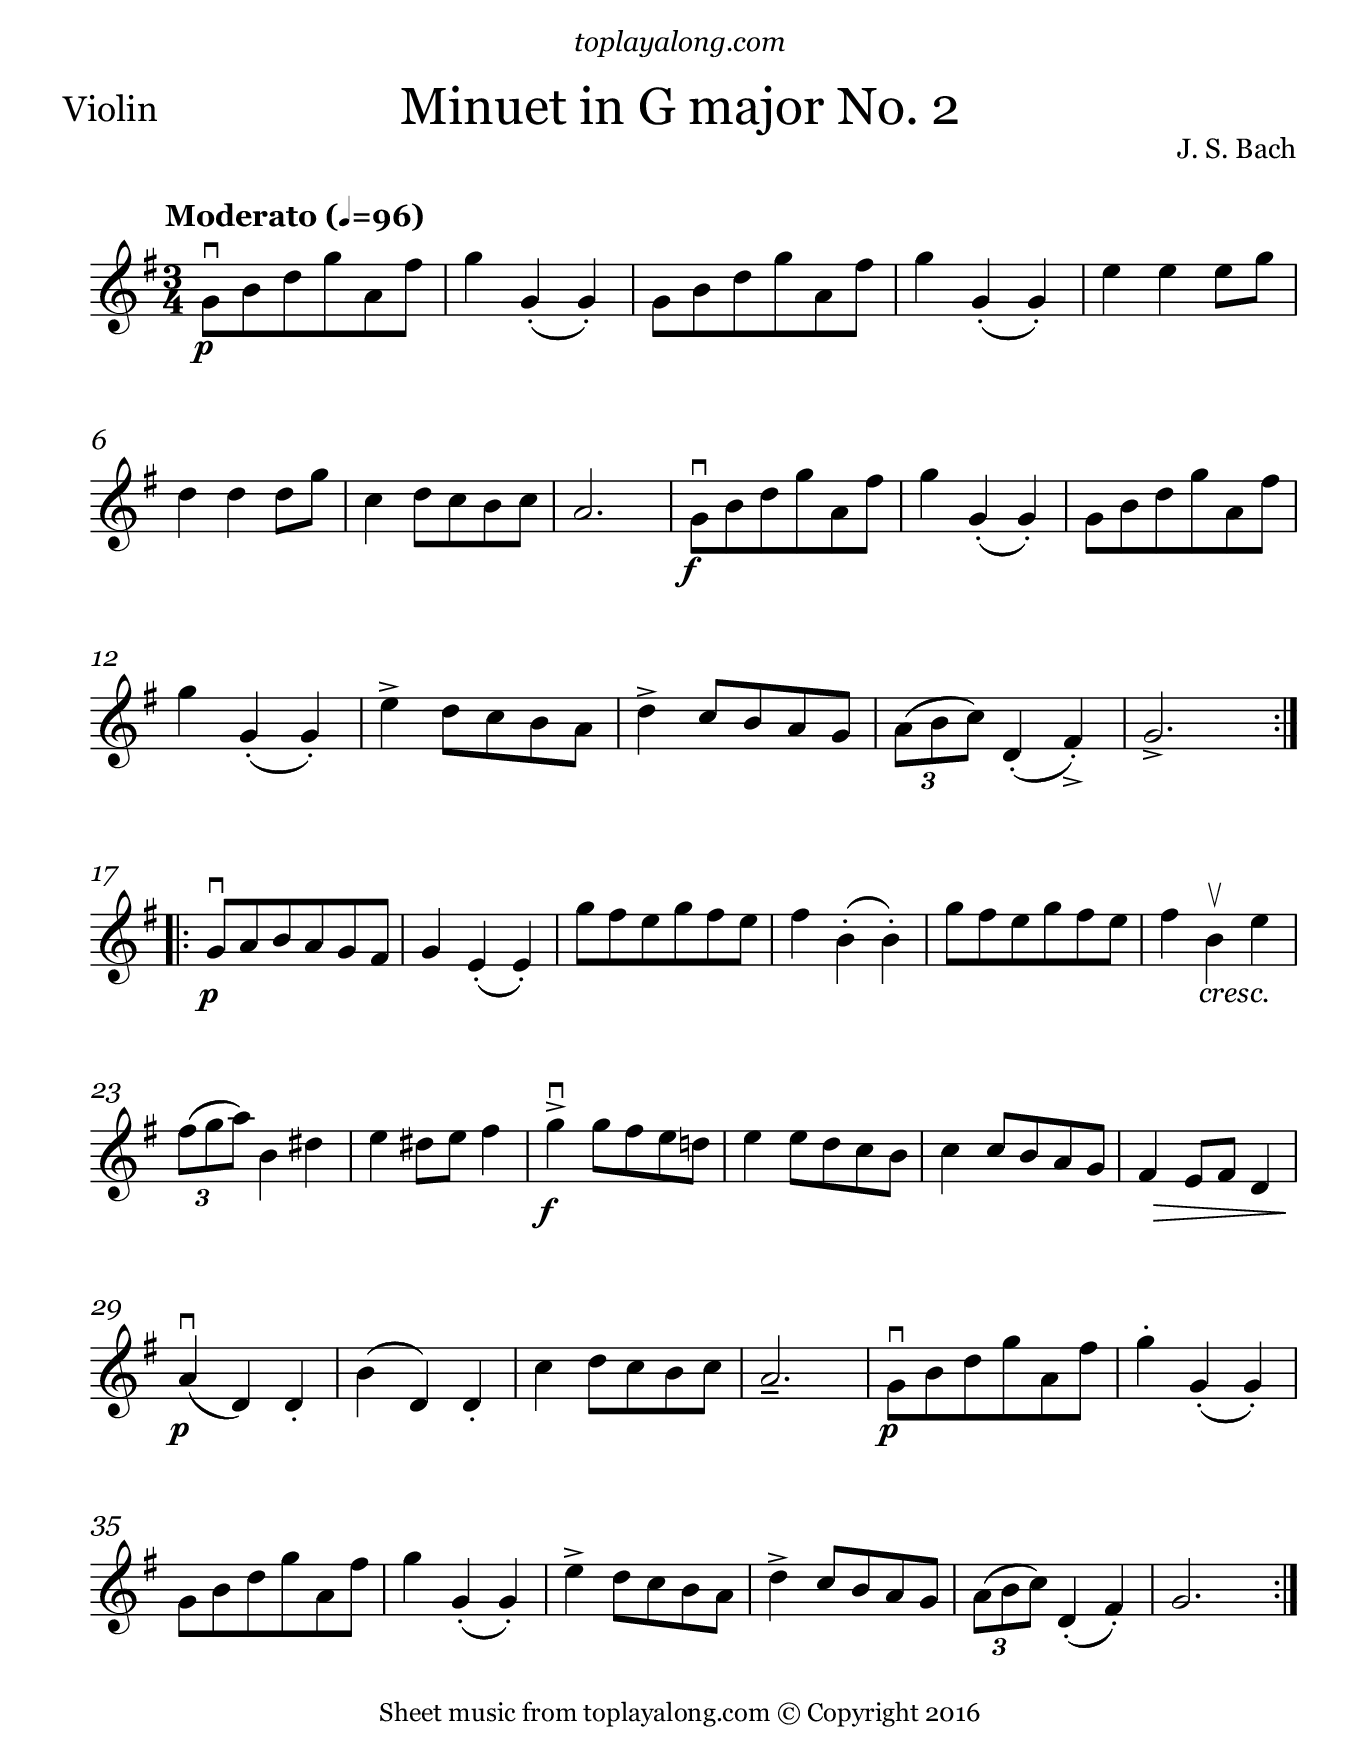 Minuet in G major No. 2 by J. S. Bach. Sheet music for Violin, page 1.